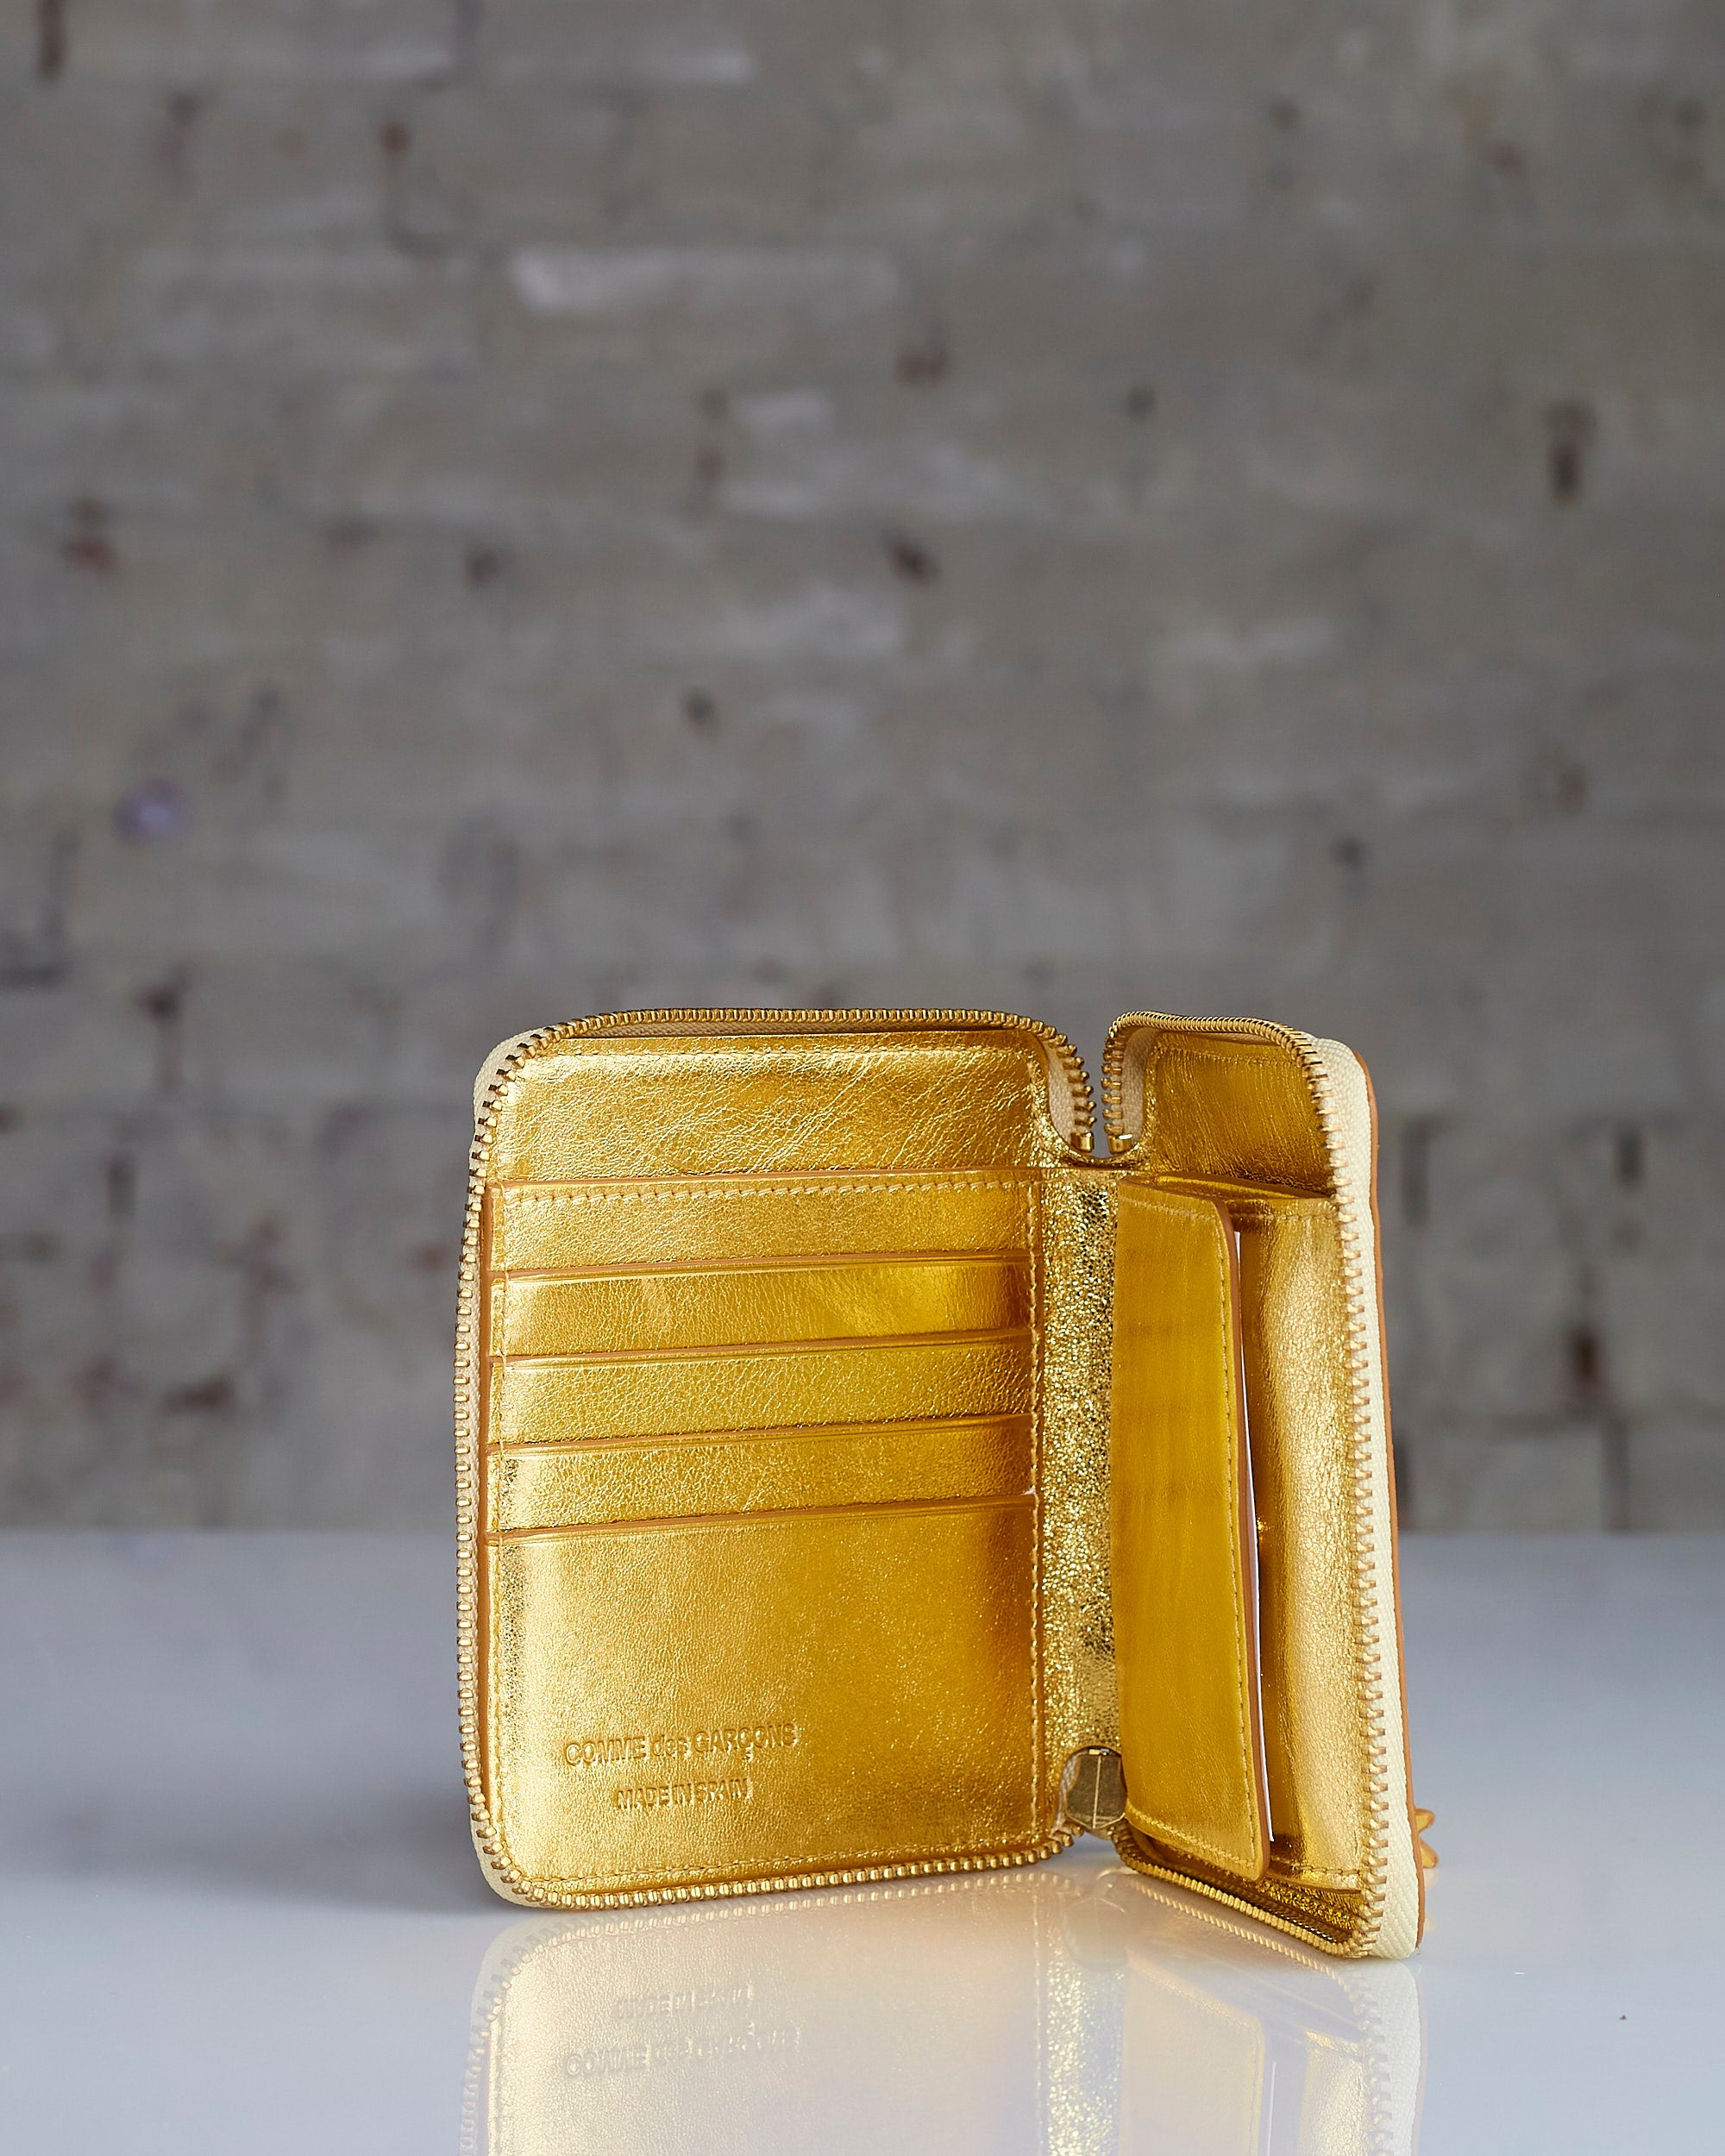 Comme des Garçons Wallet Gold and Silver Zip Wallet Gold